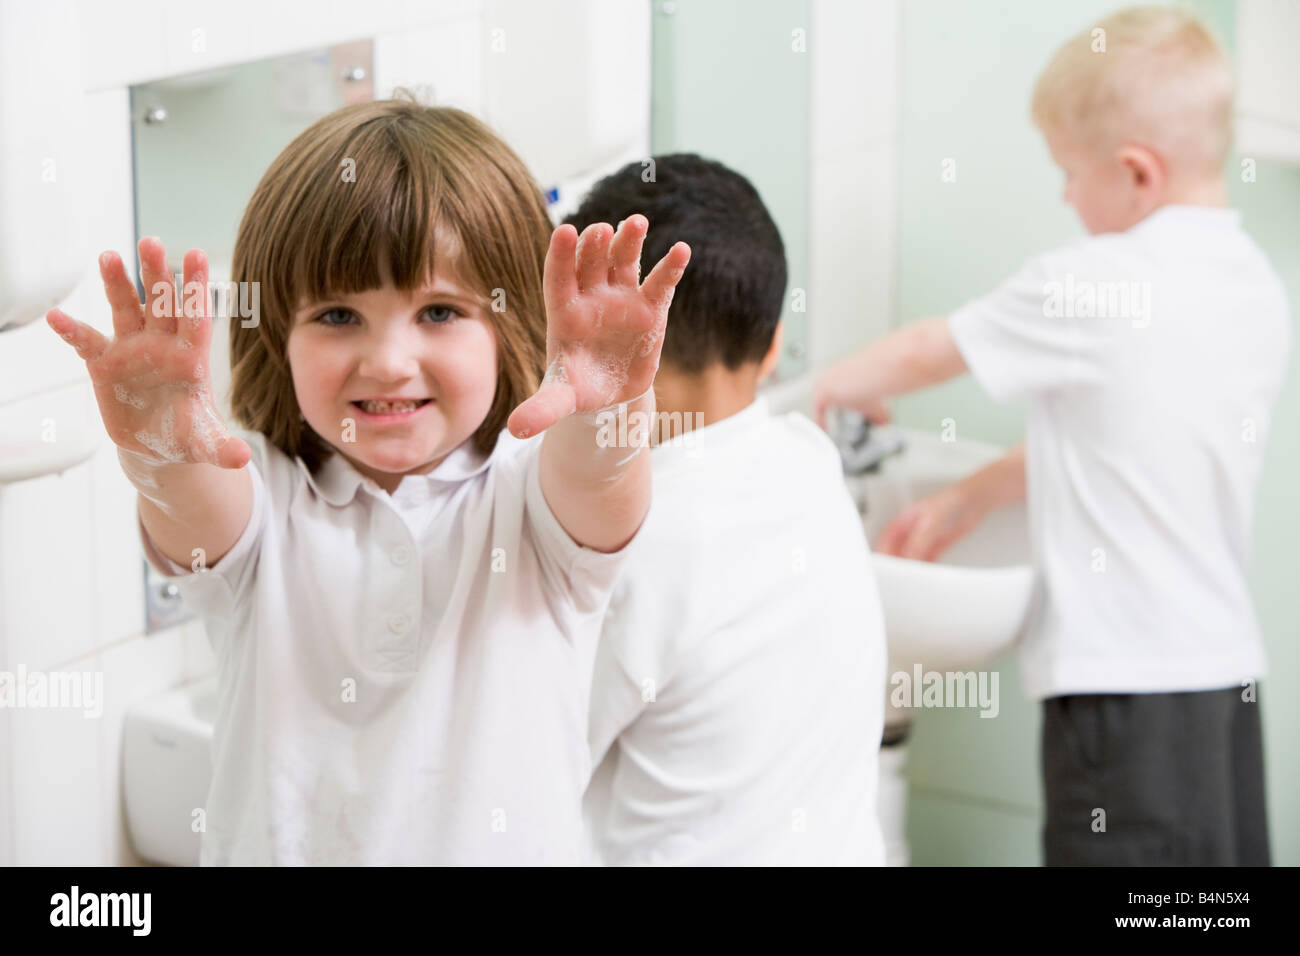 Students in bathroom at sinks washing hands with one holding up soapy hands (selective focus) - Stock Image